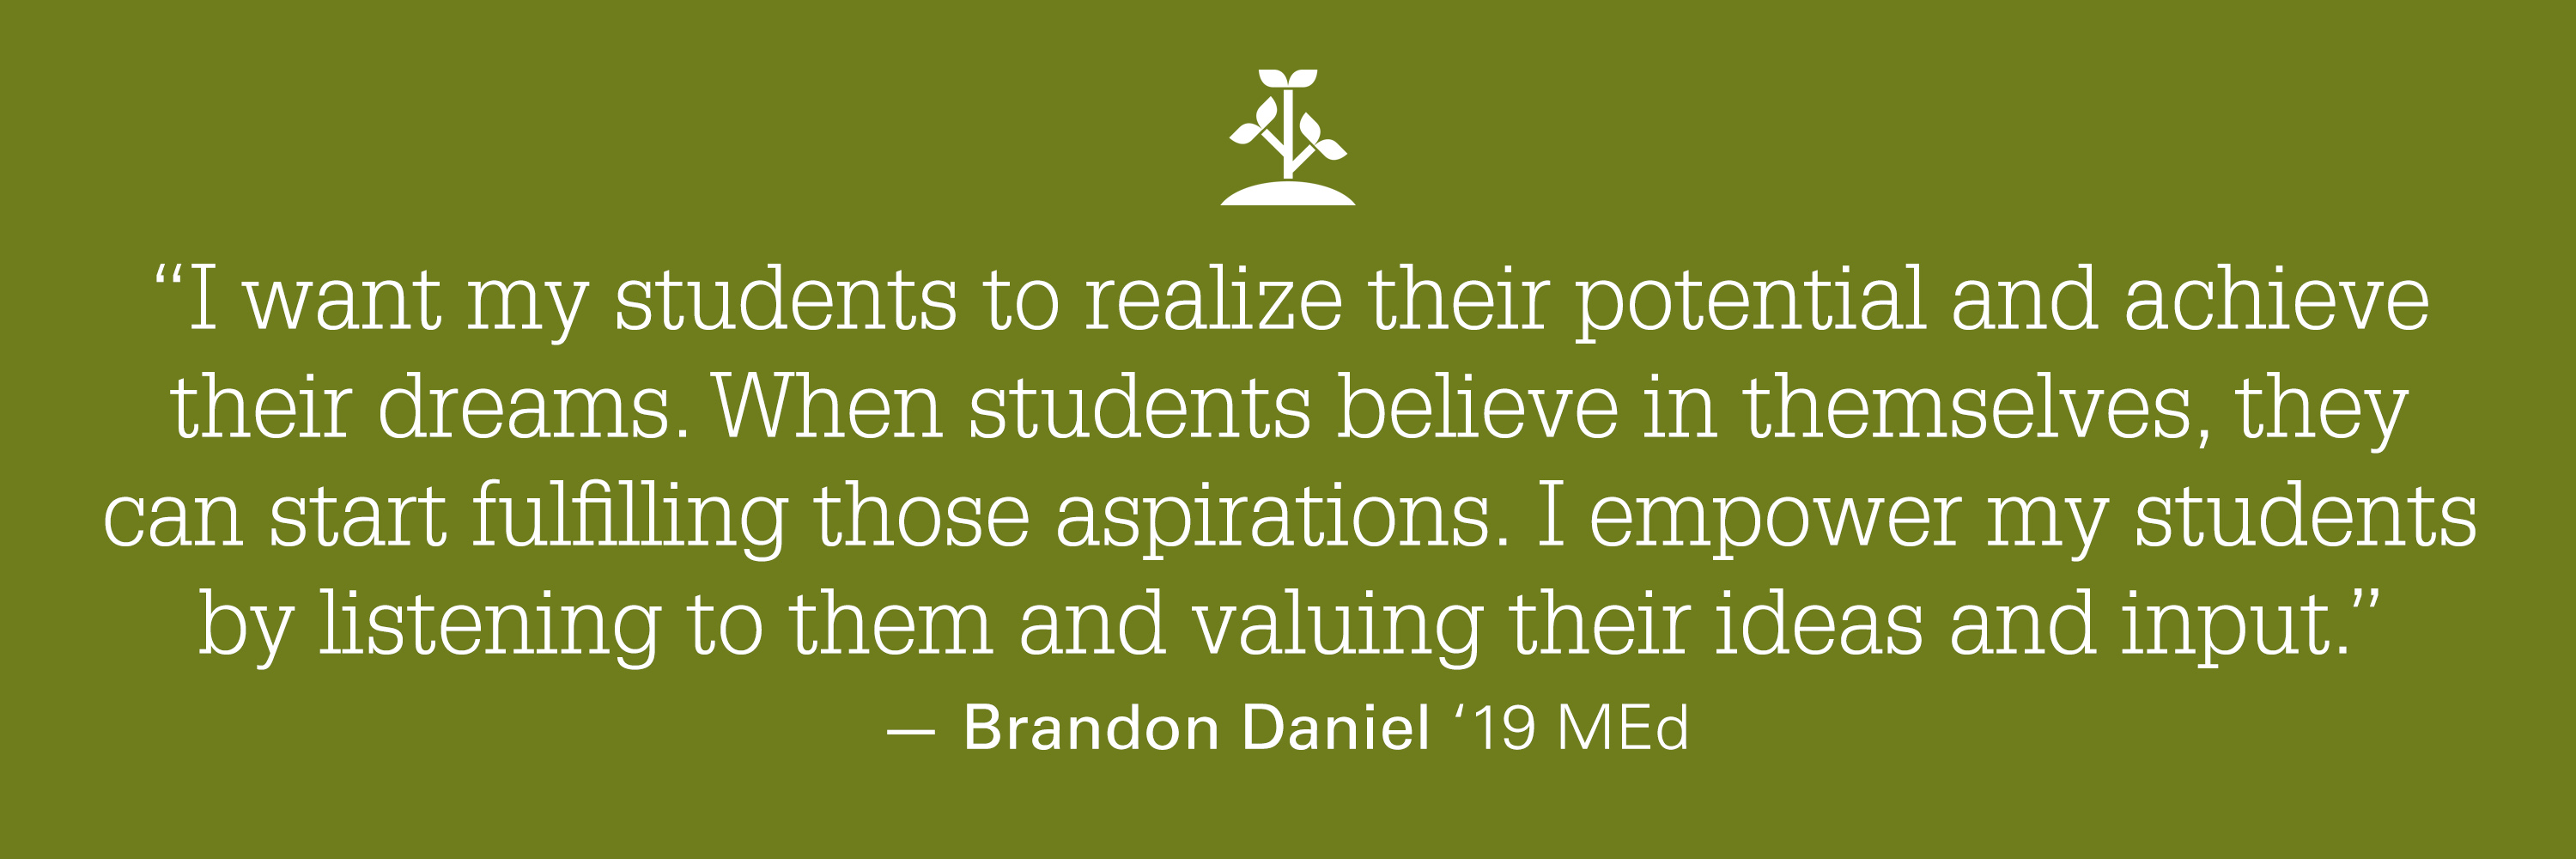 """A quote from Brand Daniels stating """"I want my students to realize their potential and achieve their dreams. When students believe in themselves, they can start fulfilling those aspirations. I empower my students by listening to them and valuing their ideas and input."""""""